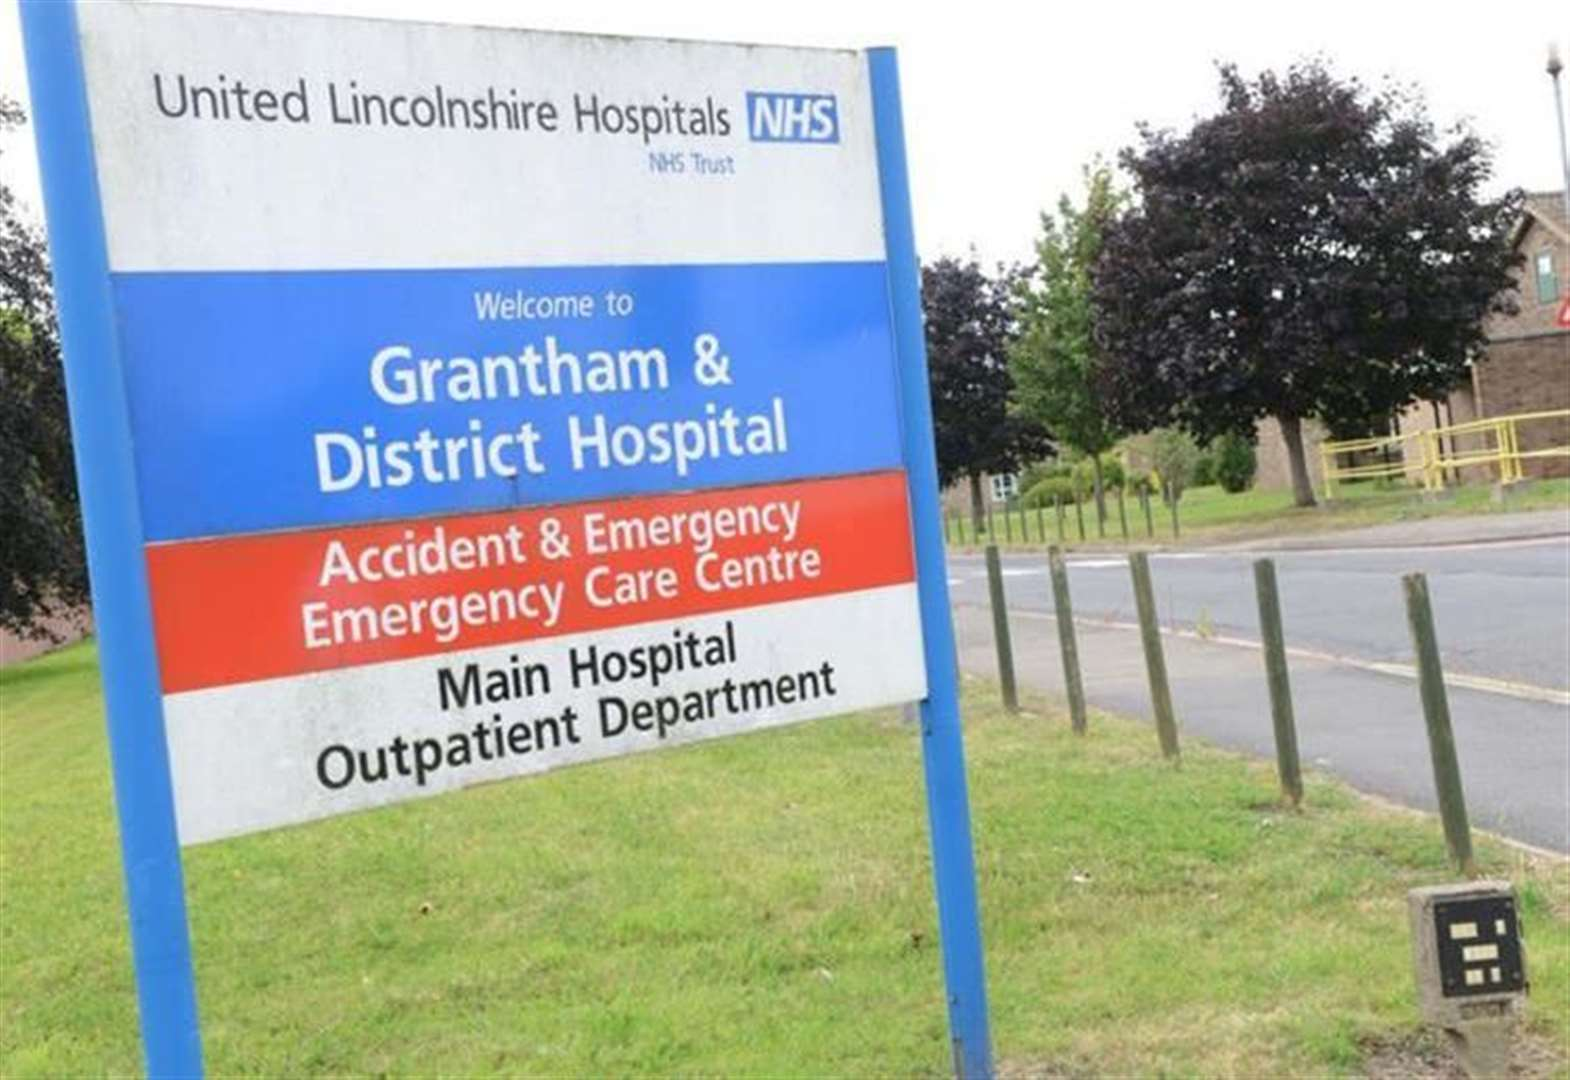 Surge in patients from Lincolnshire attending Peterborough hospital since closure of Grantham A&E overnight